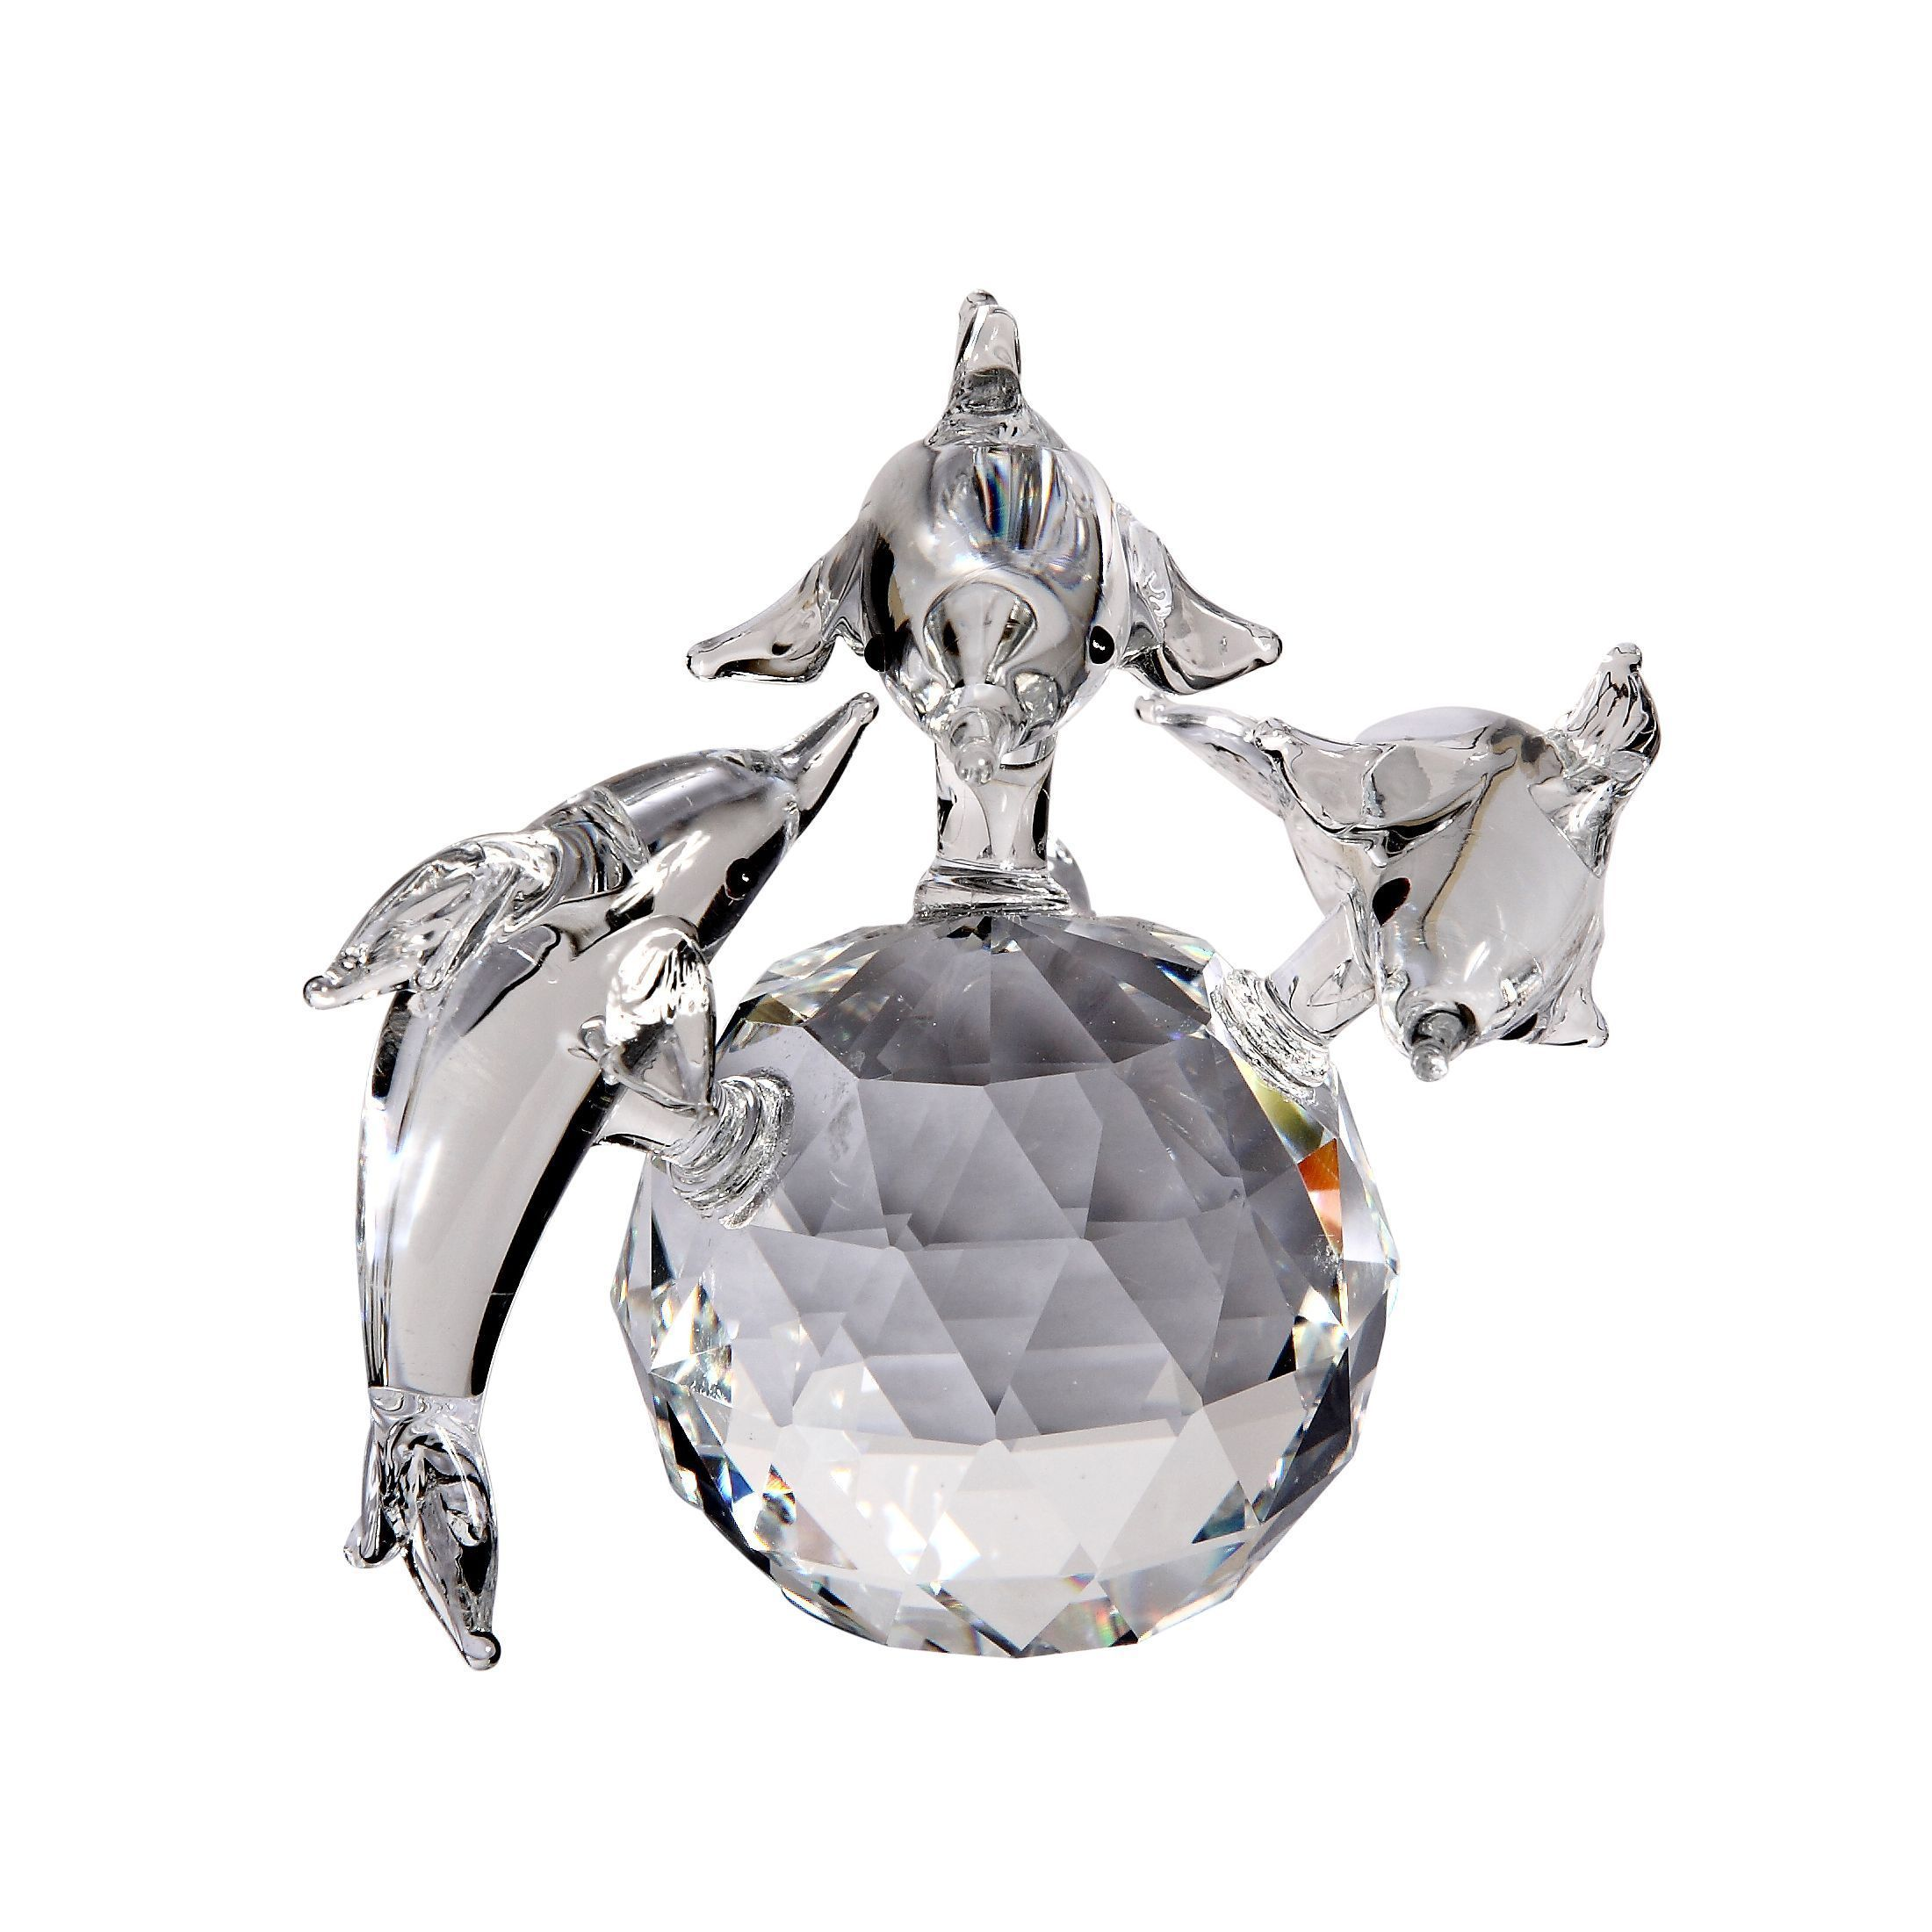 This family of dolphins made out of fine crystal is a fine addition to your crystal collection. These dolphins are gift boxed and come with a certificate of authenticity from Crystal Florida.